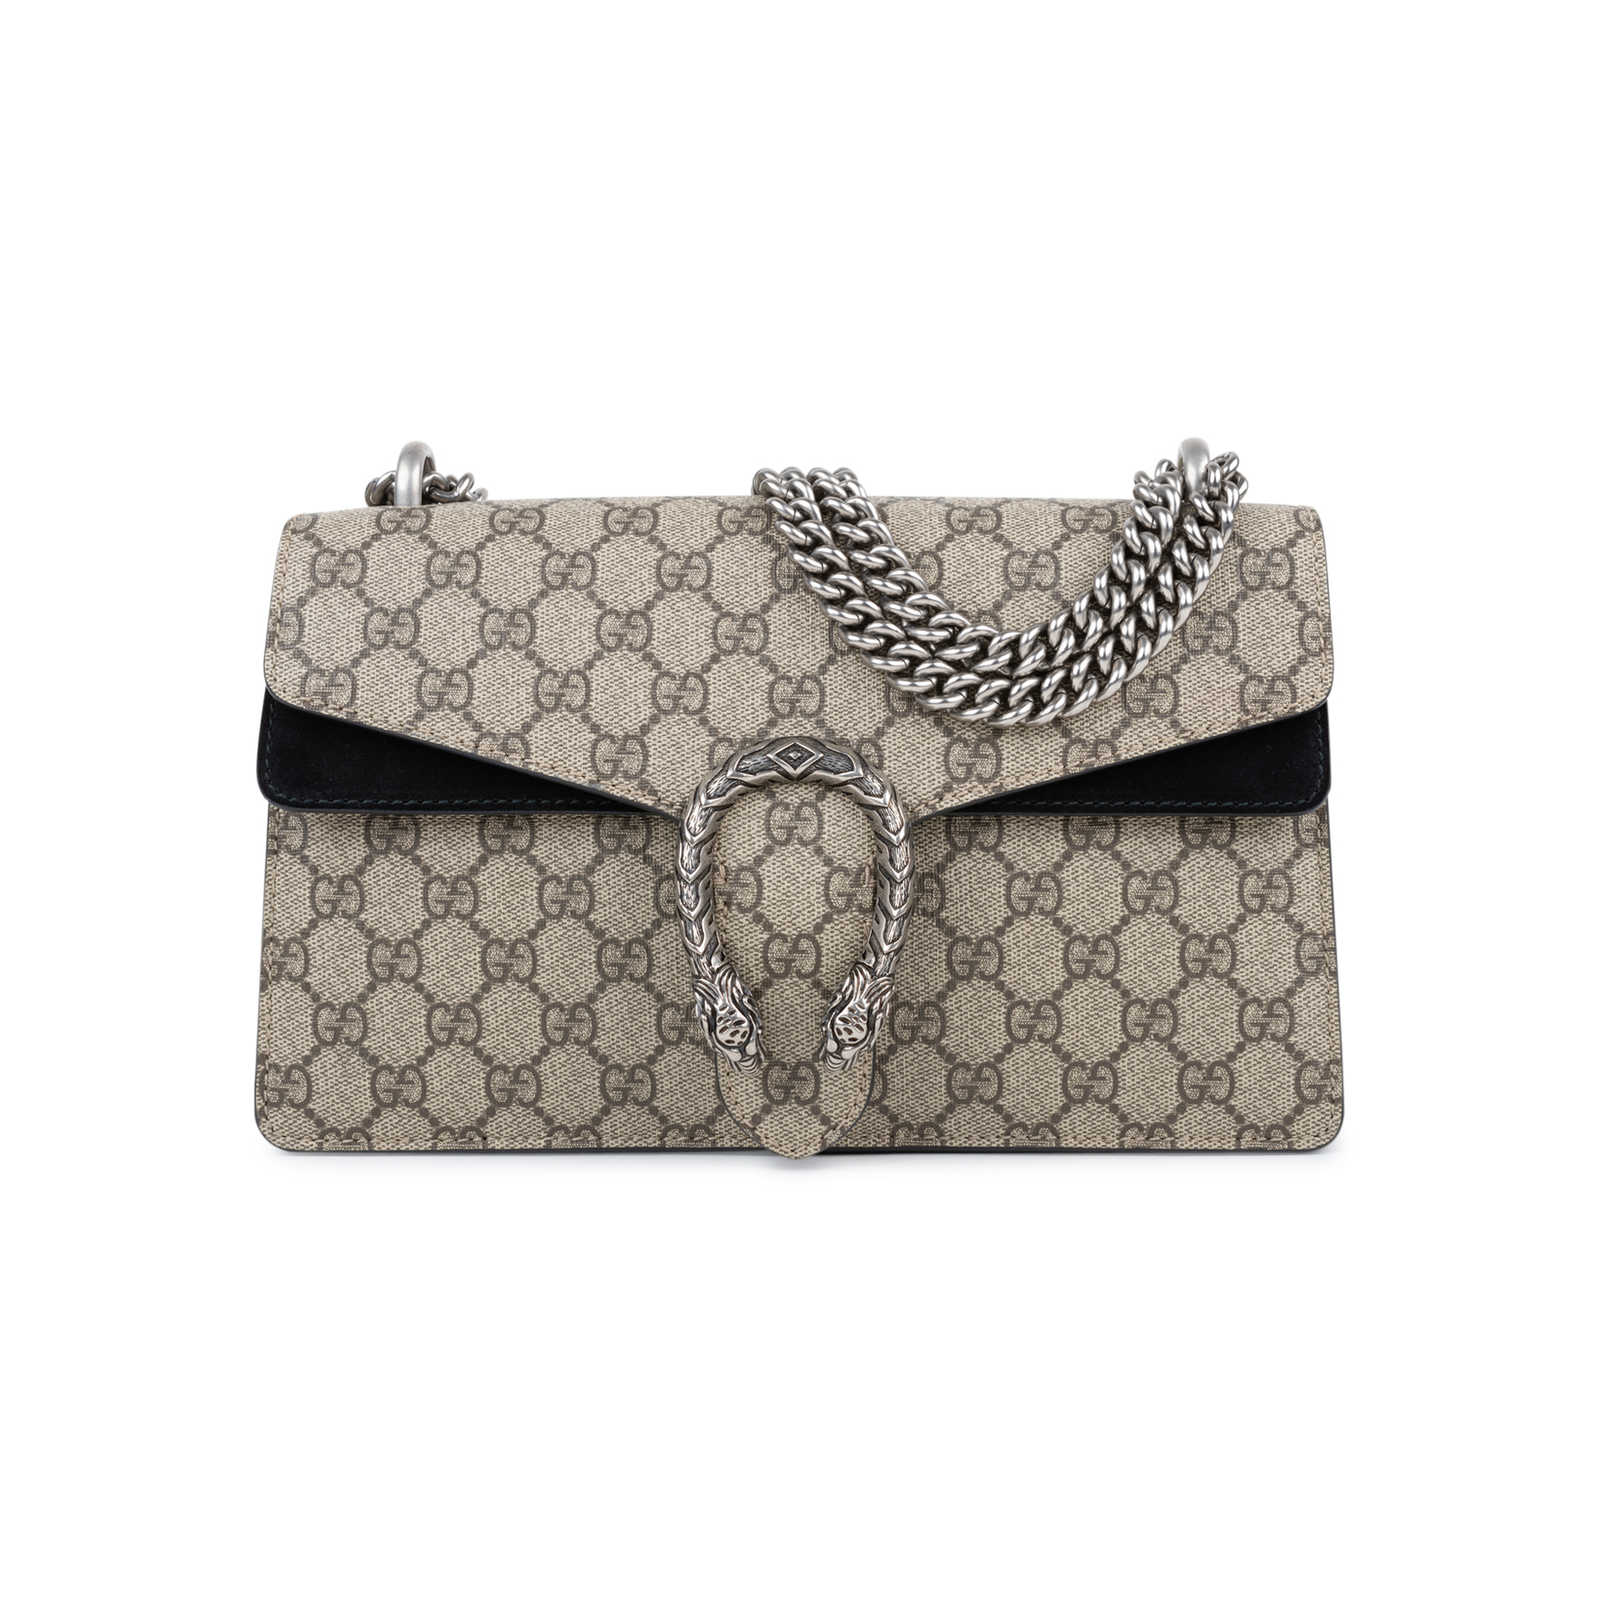 315347f2a Authentic Pre Owned Gucci Dionysus GG Supreme Medium Bag (PSS-588-00010) .